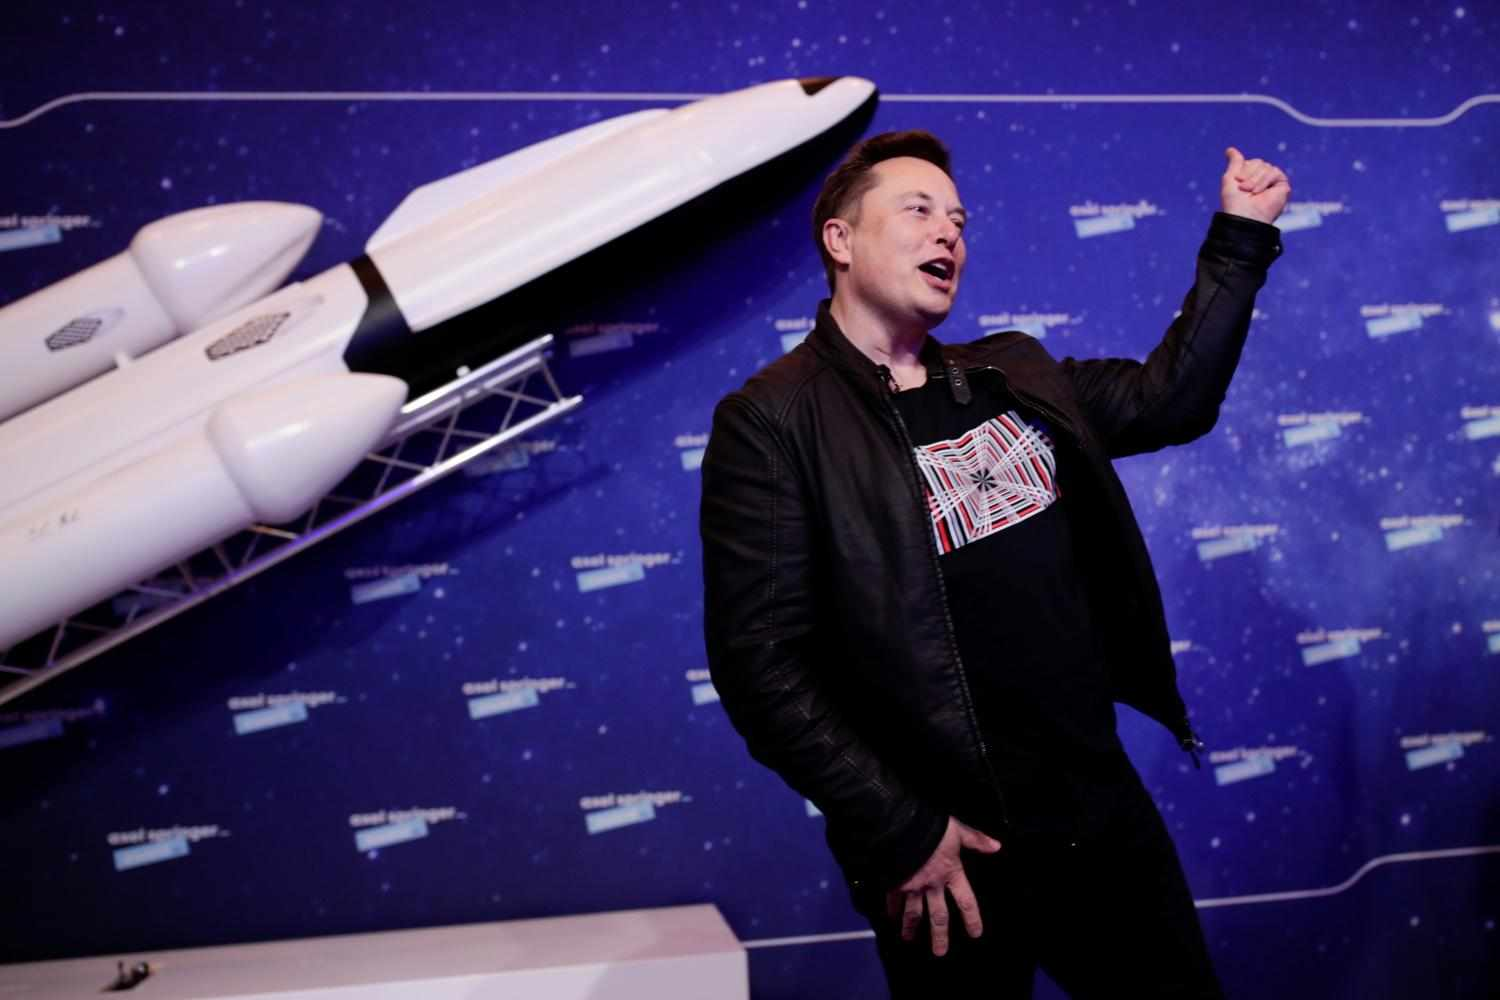 bitcoin musk spacex word